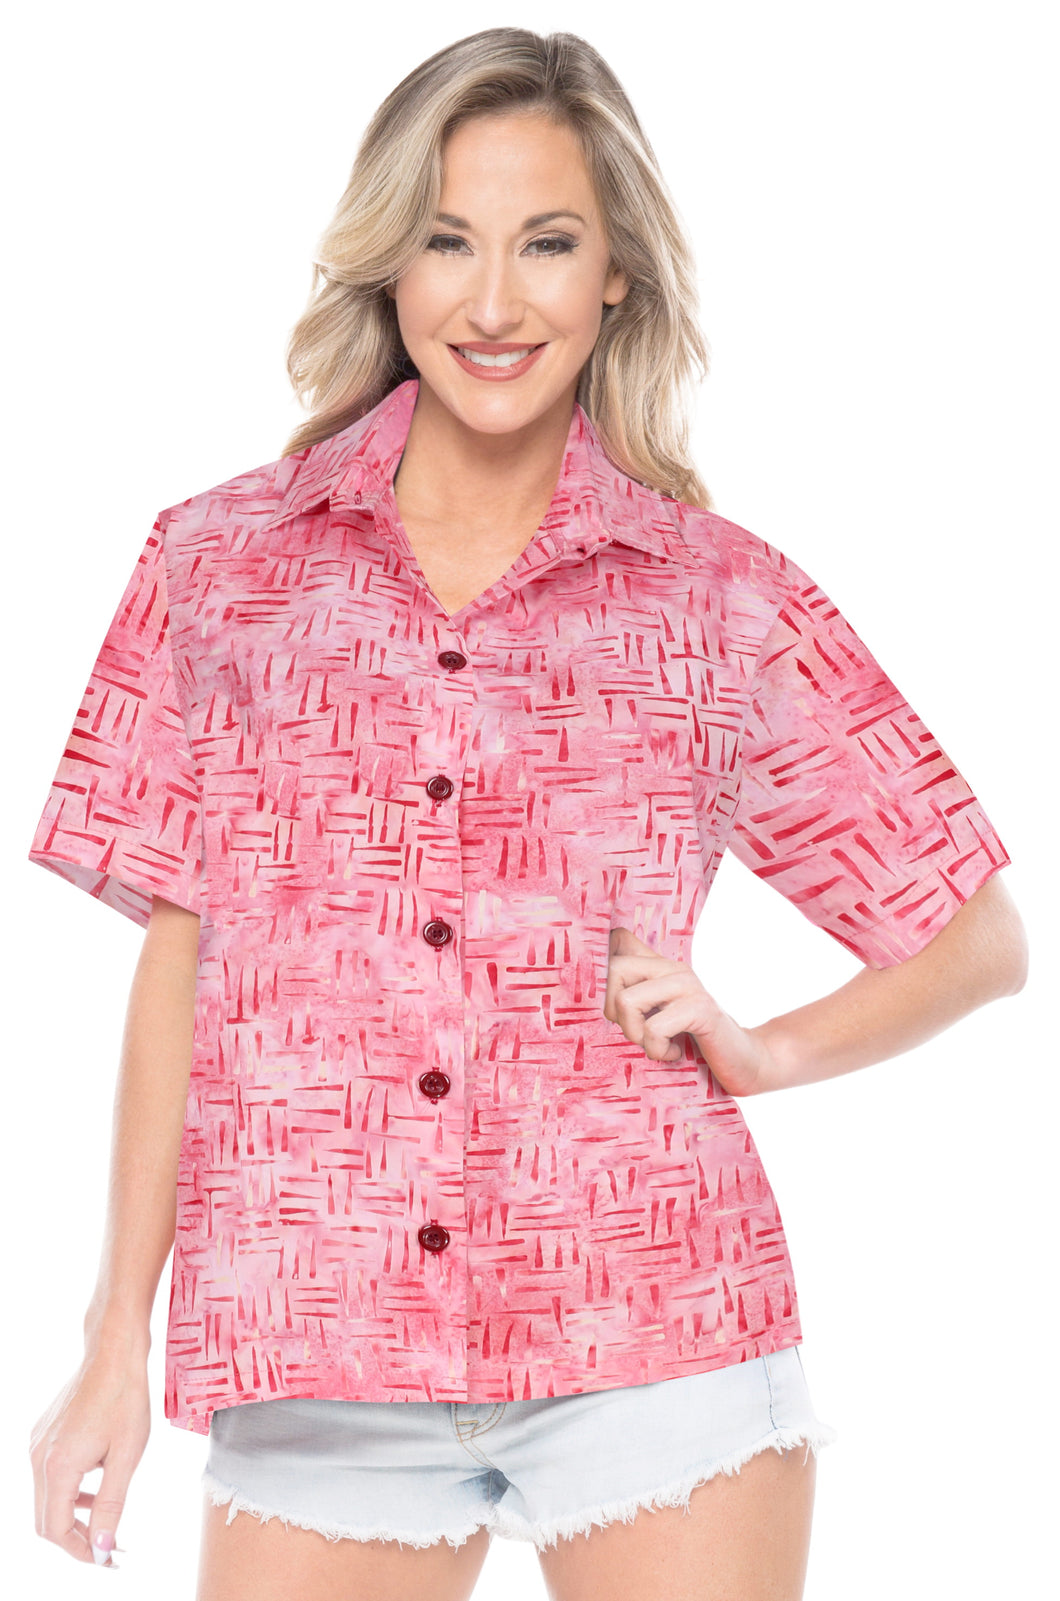 la-leela-womens-beach-wear-button-down-short-sleeve-casual-100-cotton-blouse-hand-printed-baby-pink